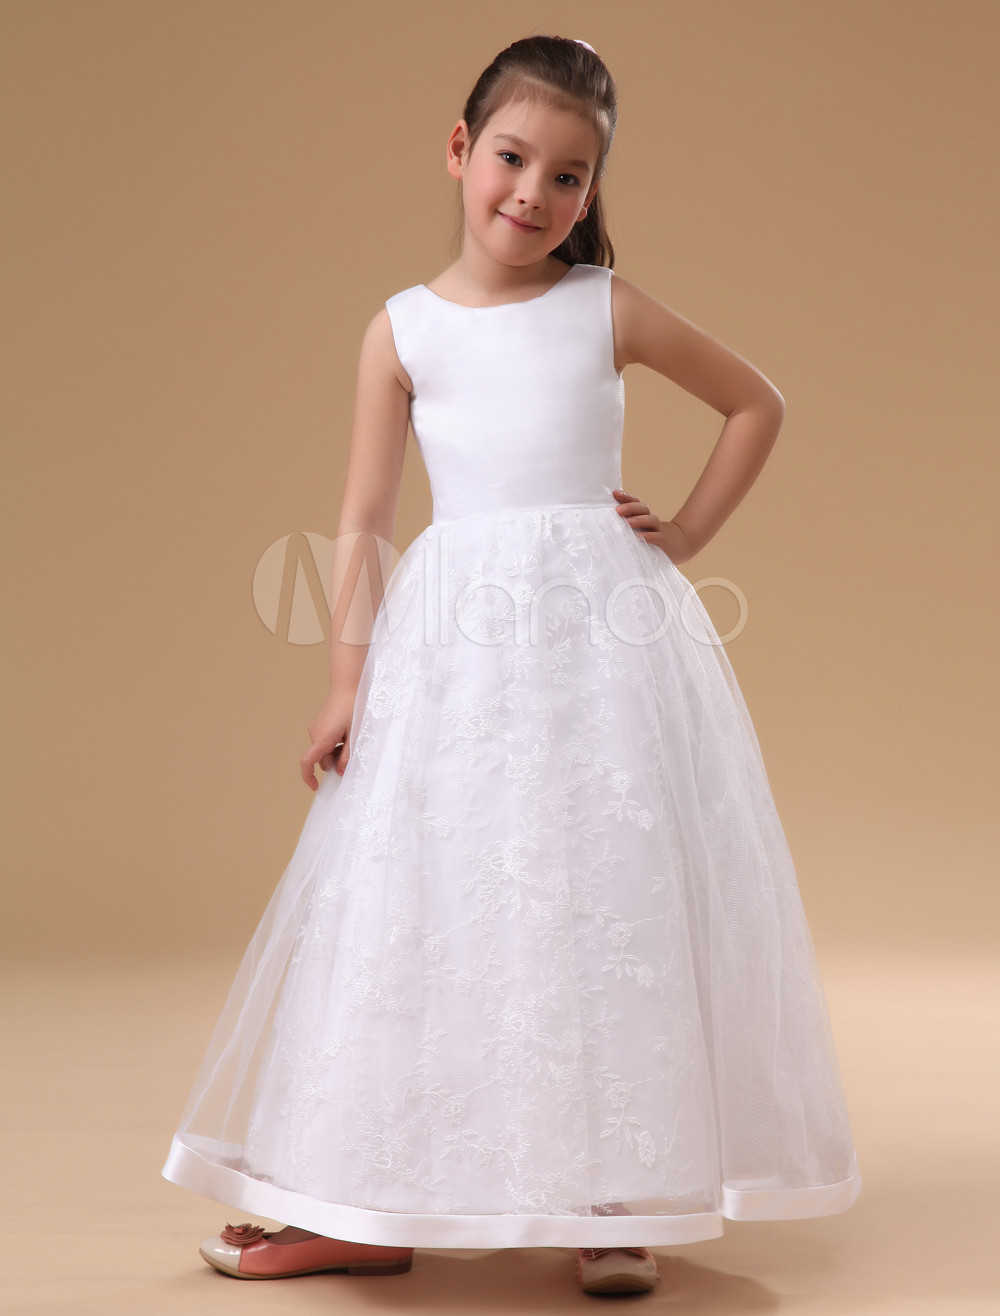 Charming White Sleeveless Satin Flower Girl Dress